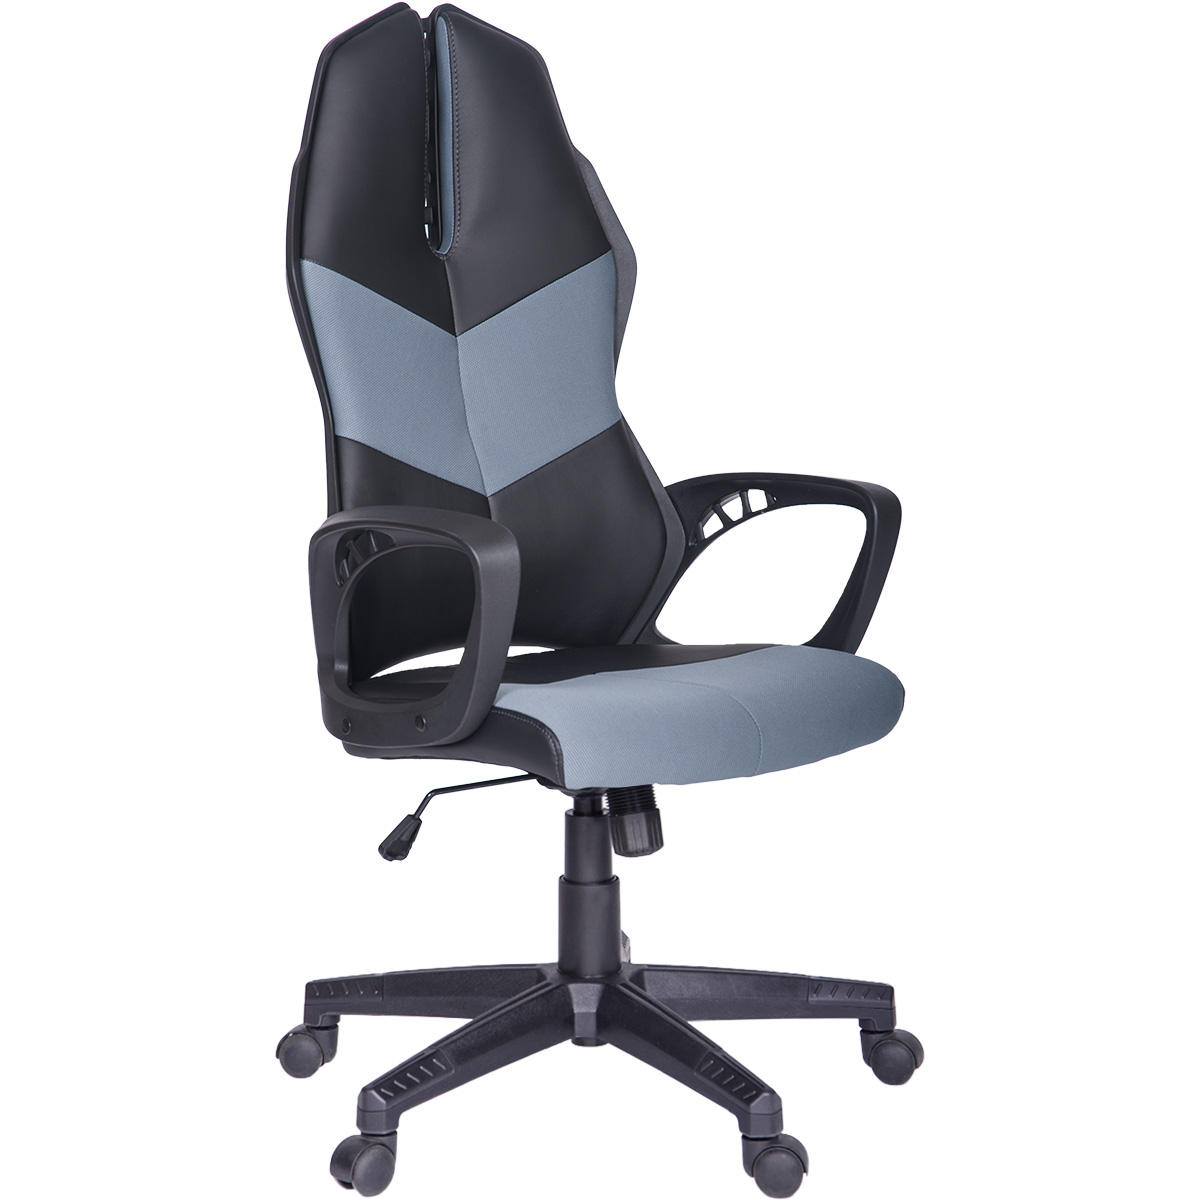 Merax Gaming Racing Style High Back Office Chair, Blue